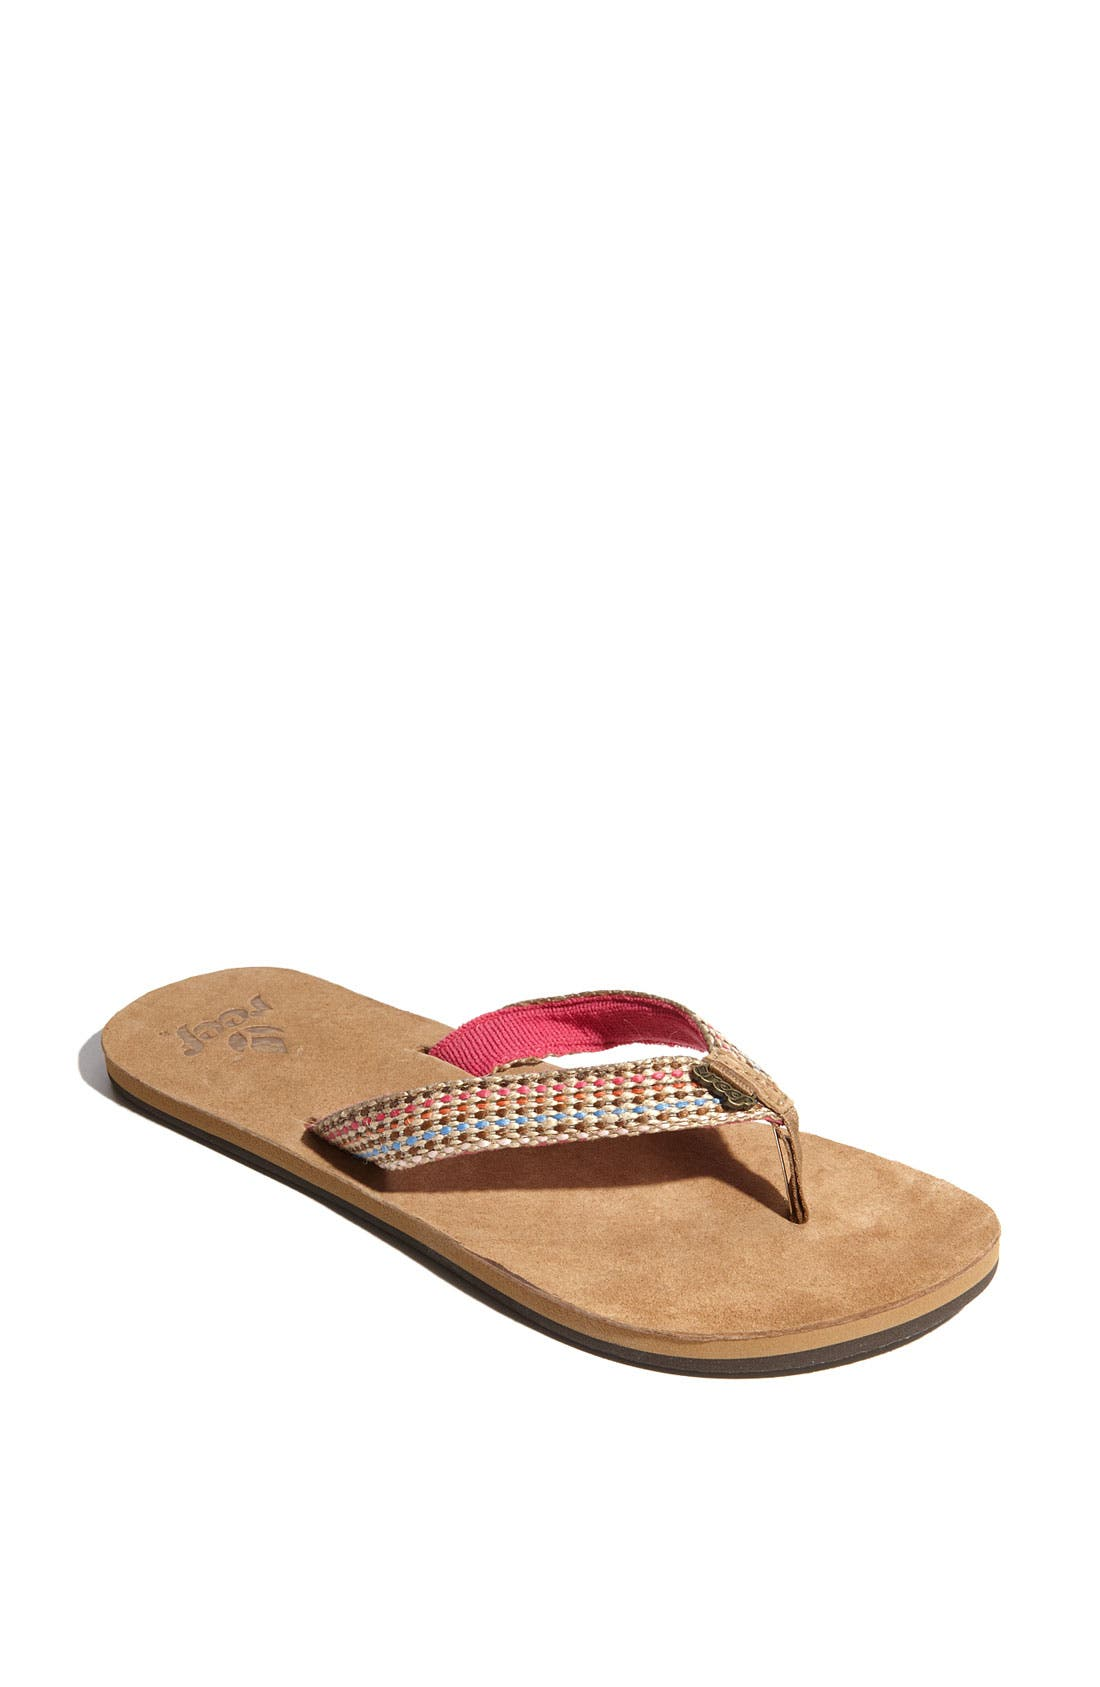 Alternate Image 1 Selected - Reef 'Gypsylove' Sandal